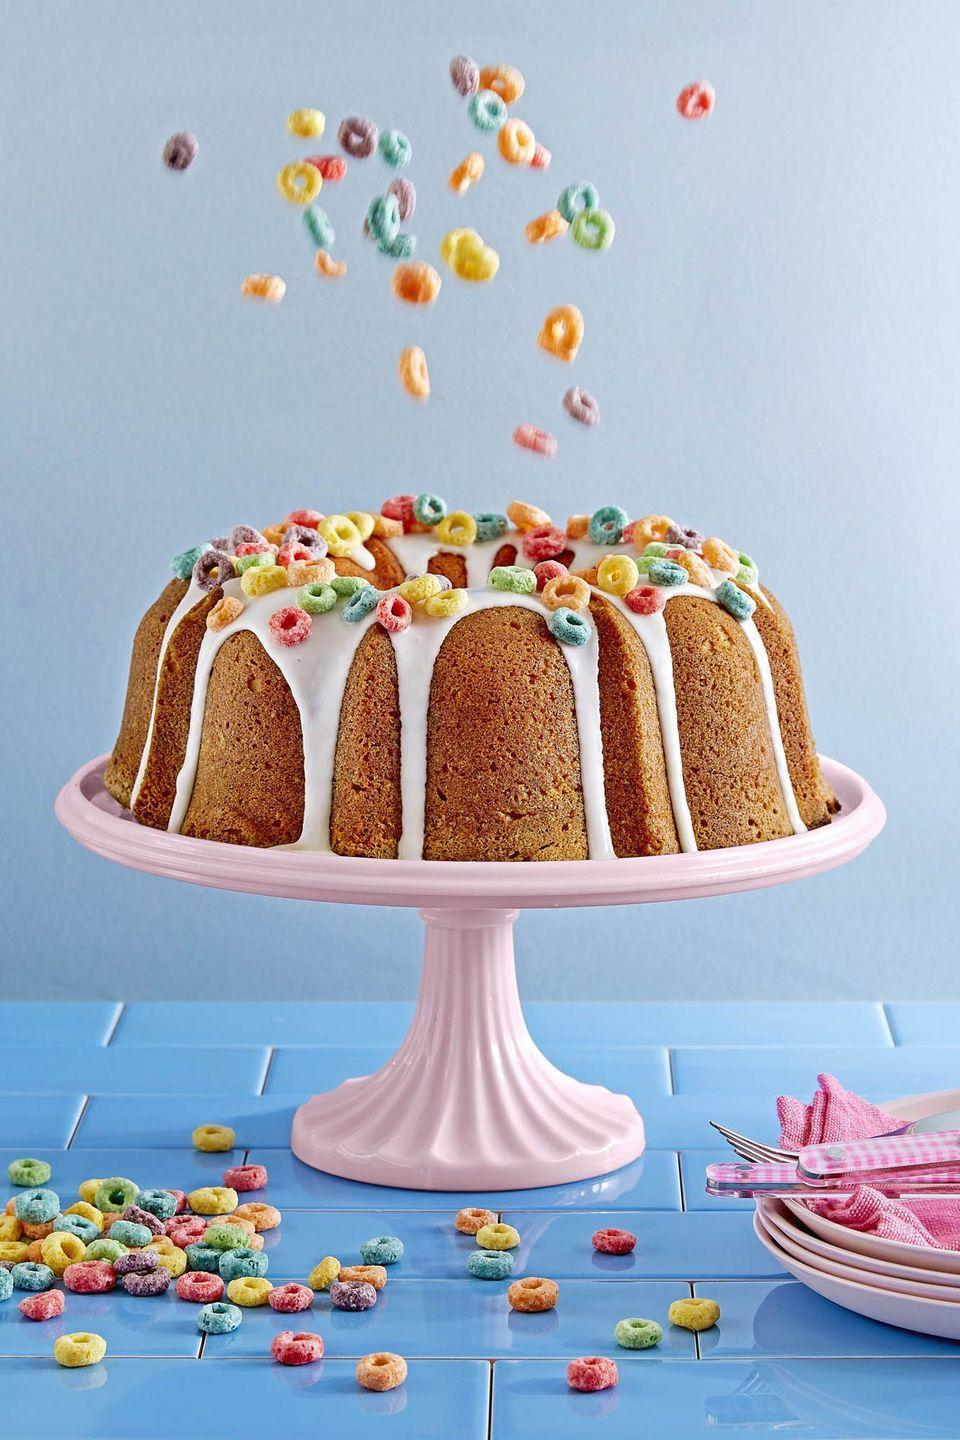 """<p>Trust us: Dad definitely won't turn down cake for breakfast. You won't either.</p><p><em><a href=""""https://www.countryliving.com/food-drinks/recipes/a46351/froot-loops-cake-recipe/"""" rel=""""nofollow noopener"""" target=""""_blank"""" data-ylk=""""slk:Get the recipe from Country Living »"""" class=""""link rapid-noclick-resp"""">Get the recipe from Country Living »</a></em></p><p><strong>RELATED: </strong><a href=""""https://www.goodhousekeeping.com/food-recipes/g4201/best-brunch-recipes/"""" rel=""""nofollow noopener"""" target=""""_blank"""" data-ylk=""""slk:60 Best Brunch Ideas to Try This Weekend"""" class=""""link rapid-noclick-resp"""">60 Best Brunch Ideas to Try This Weekend</a></p>"""